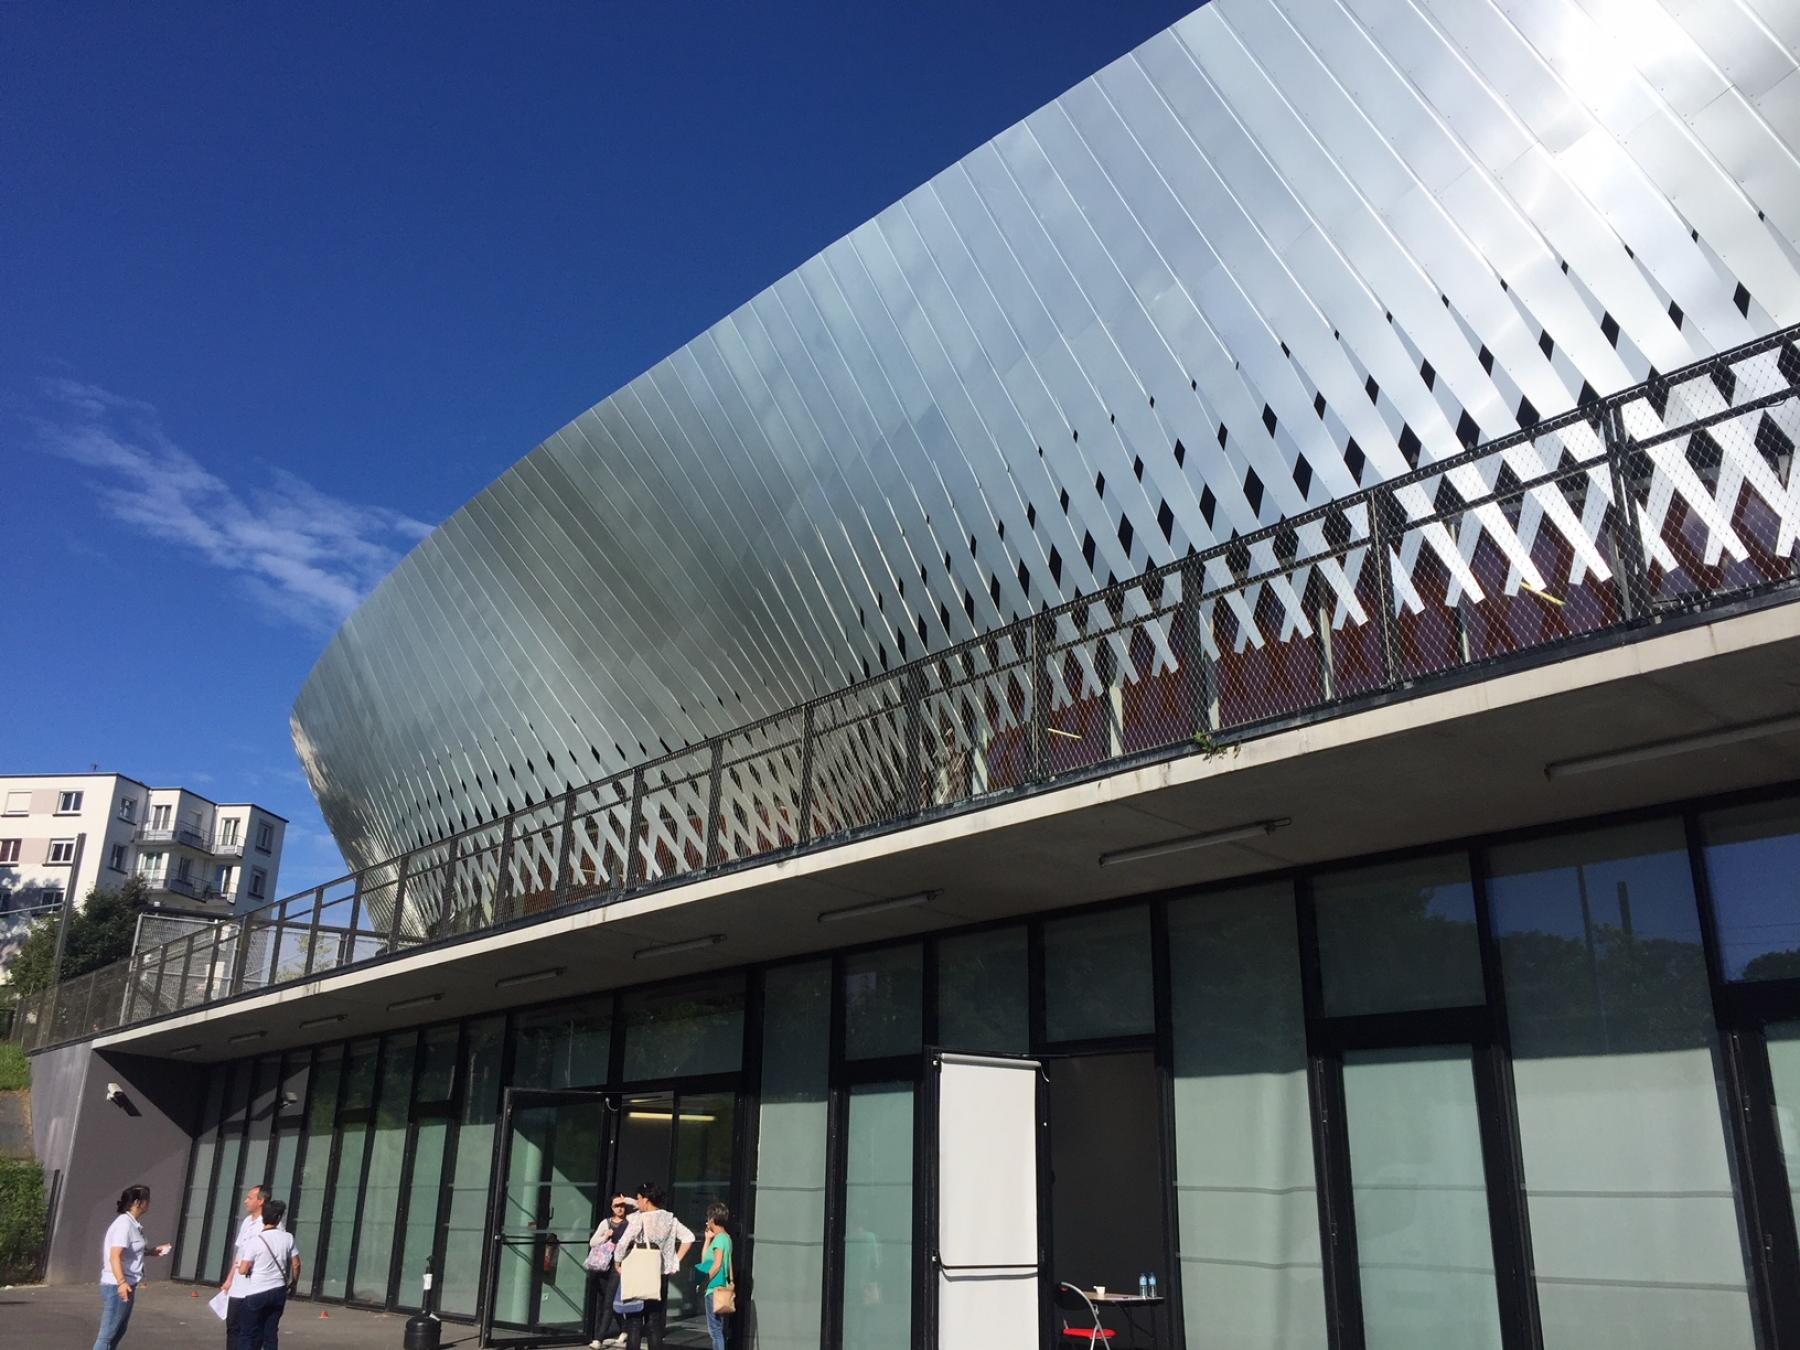 The employment event was hosted at the stunning Brest Arena